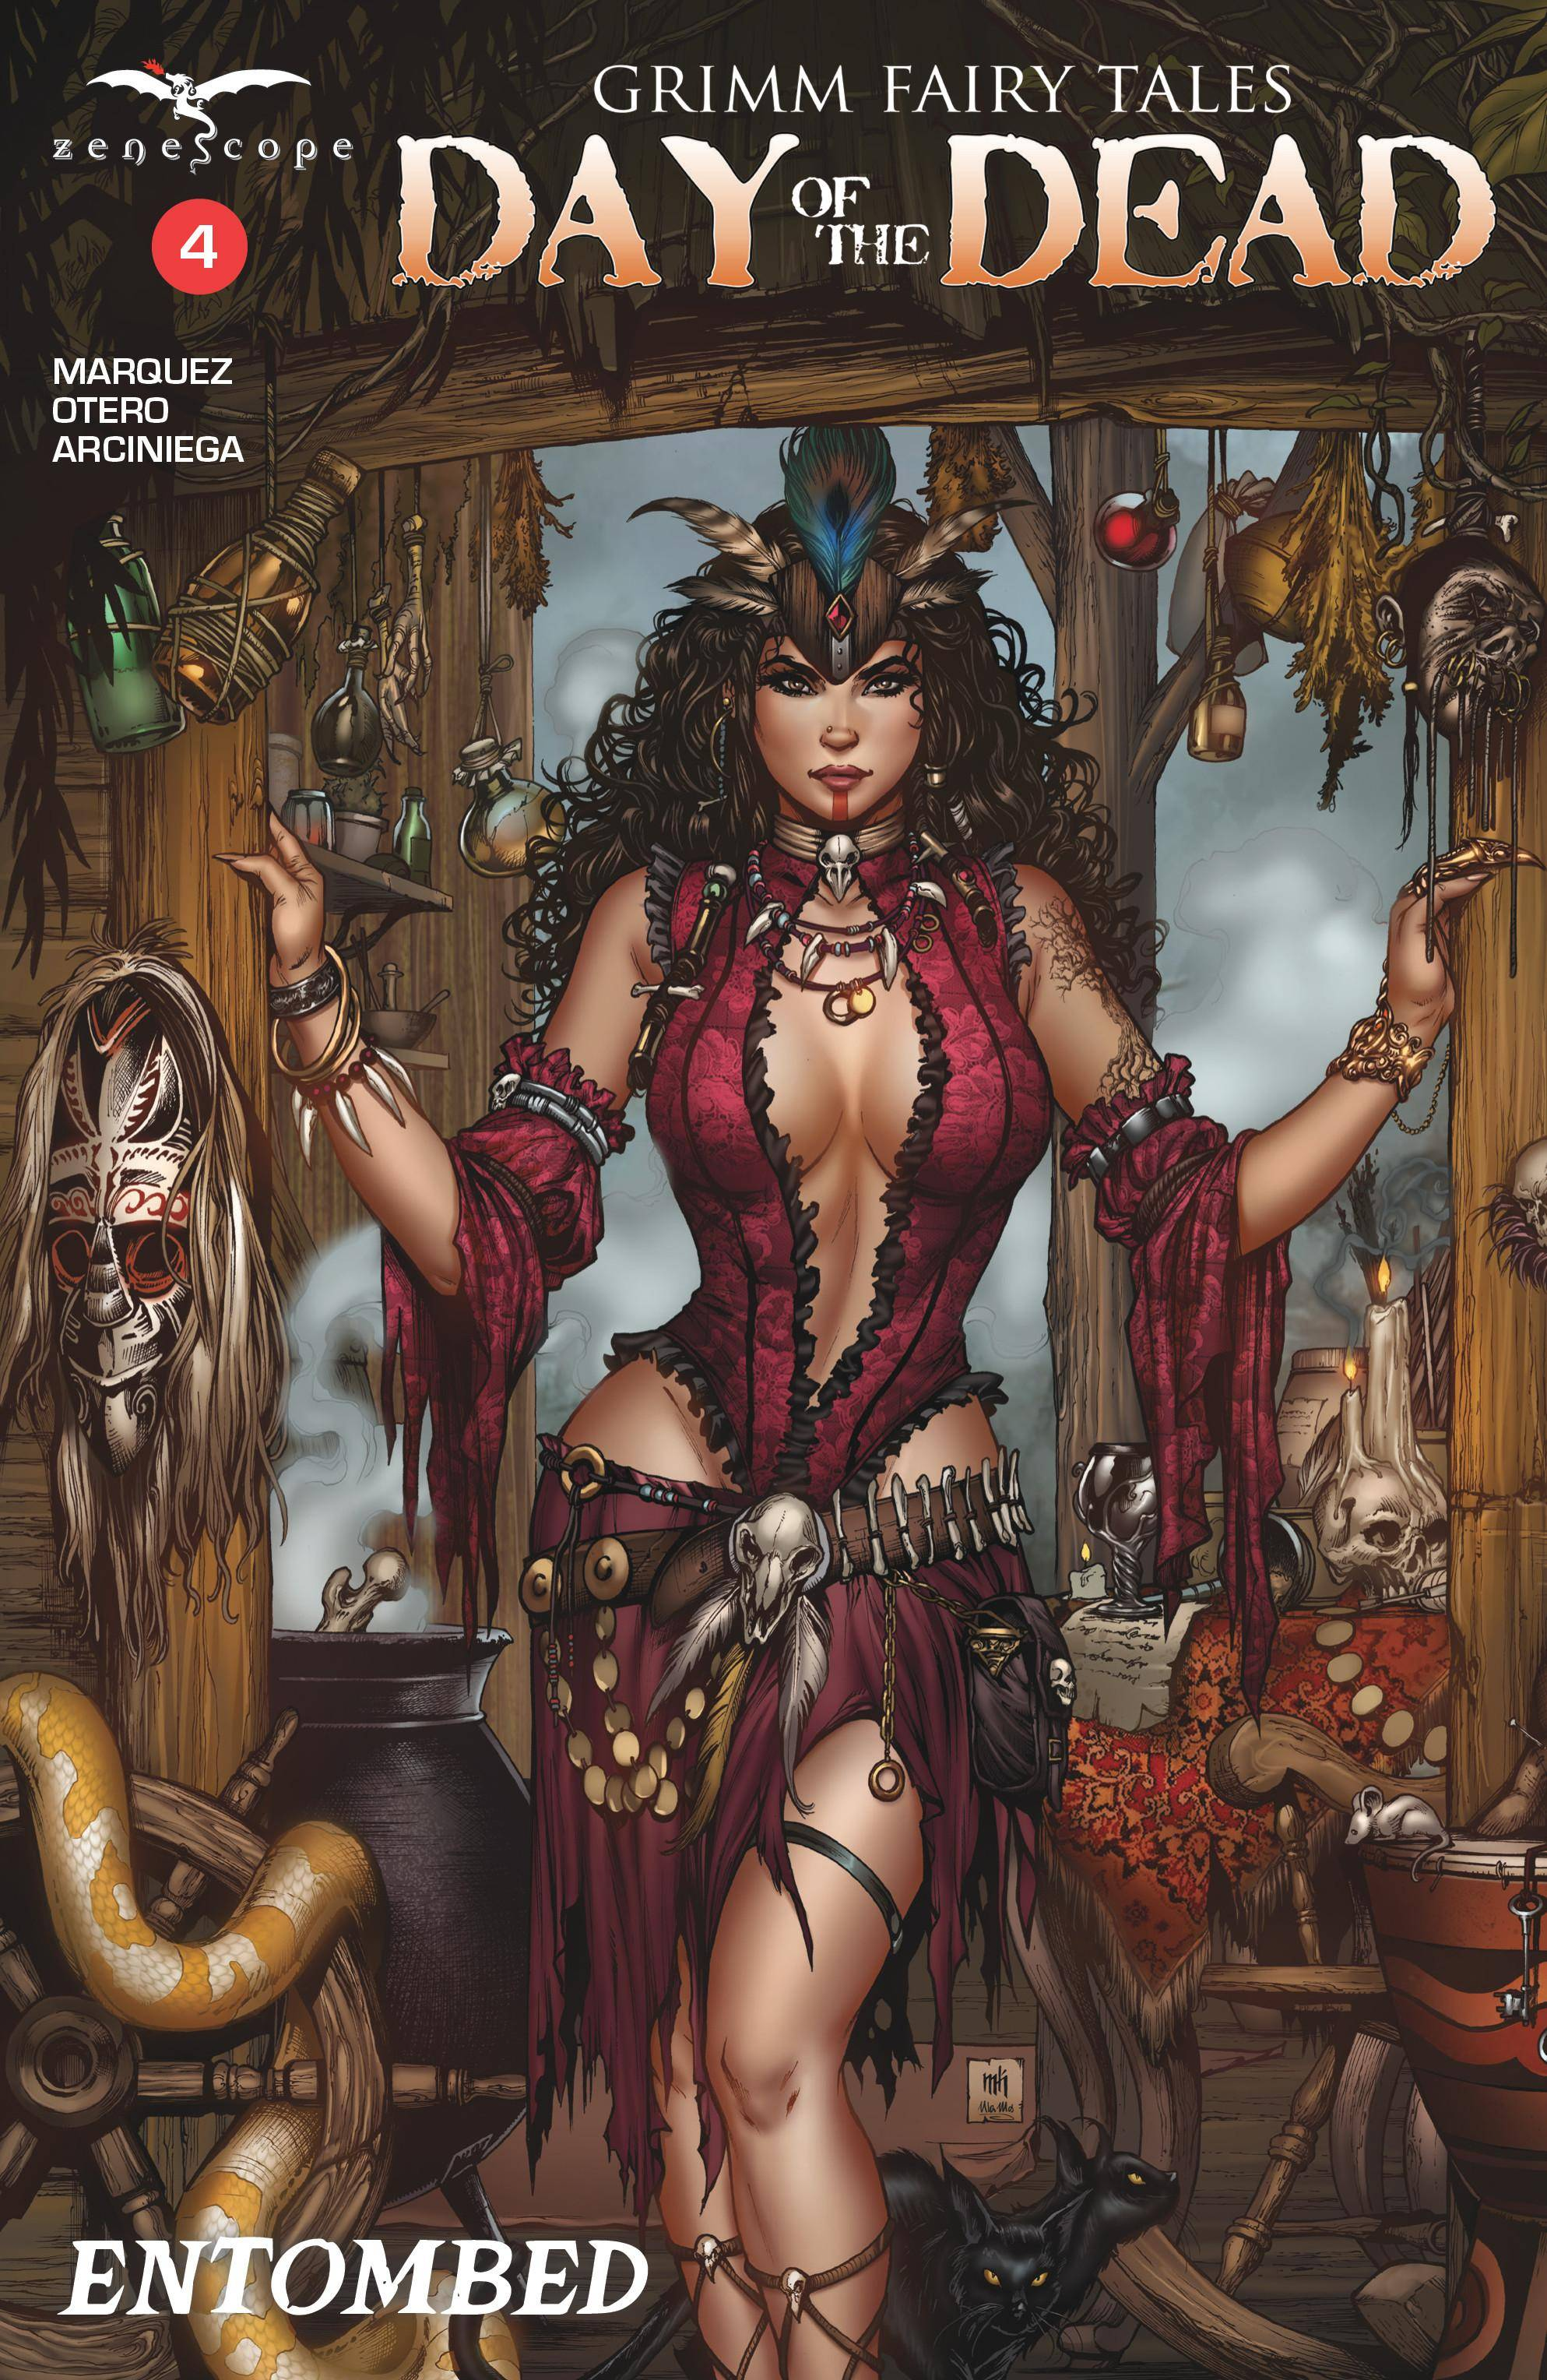 Grimm Fairy Tales Day of the Dead 0042017DigitalTLK-EMPIRE-HD